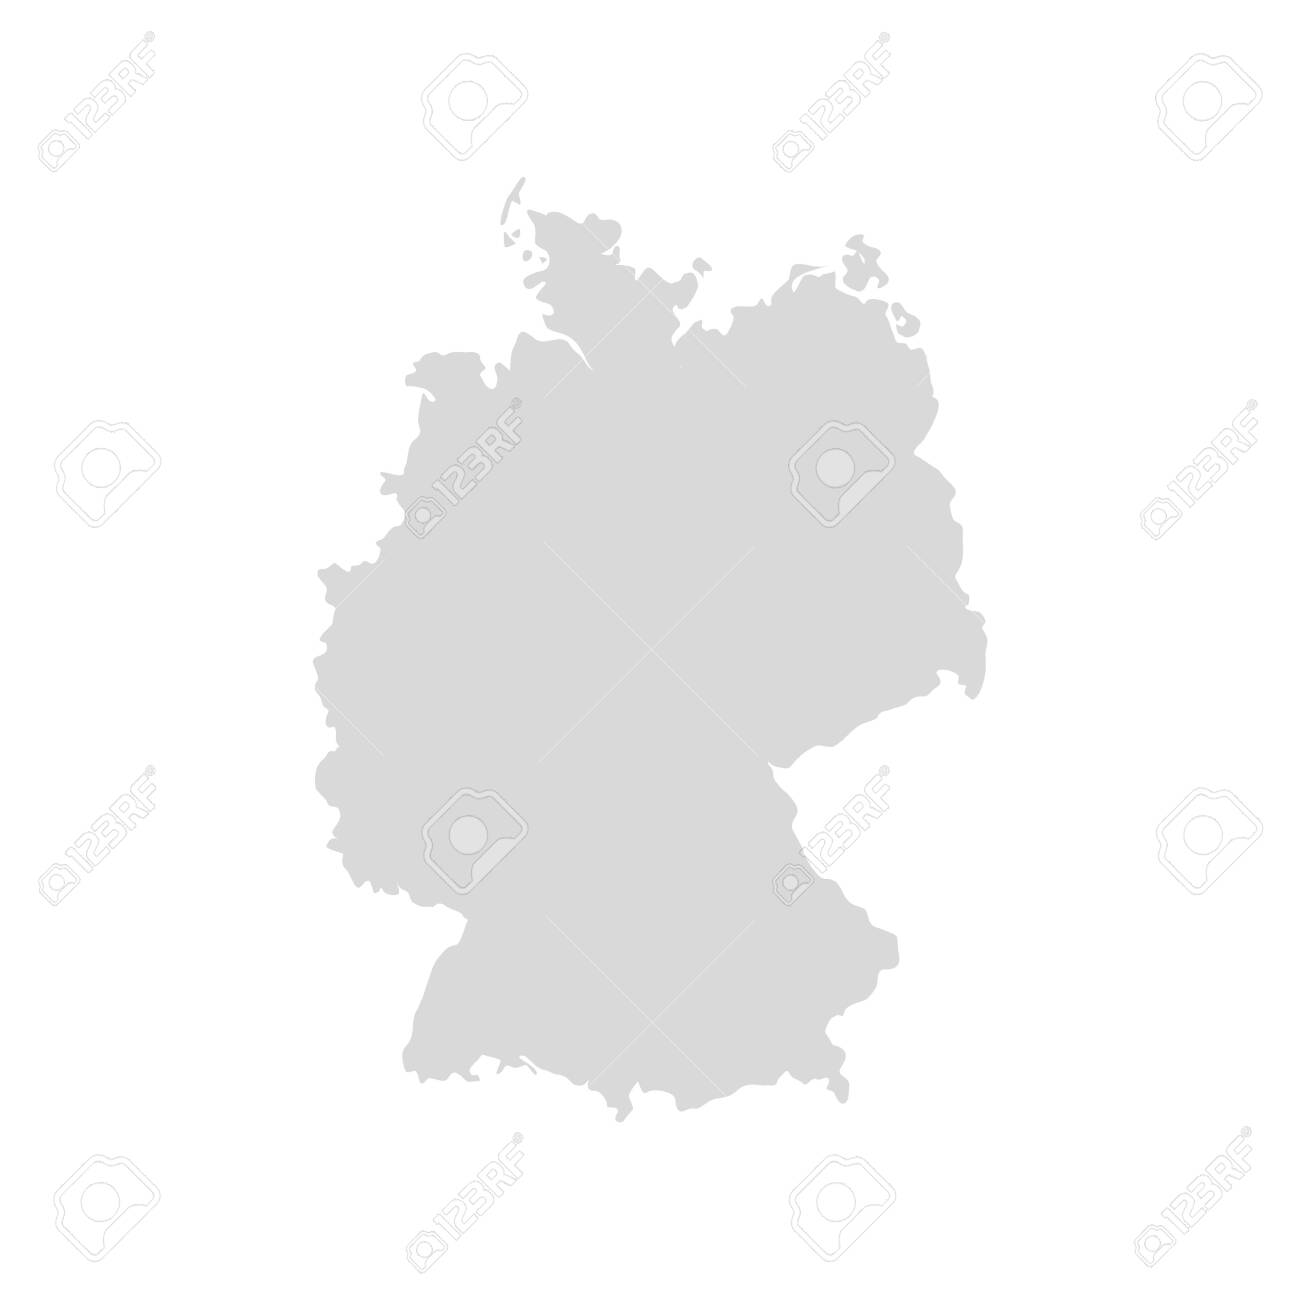 Picture of: Germany Vector Map Icon Europe Germany Country Map Background Royalty Free Cliparts Vectors And Stock Illustration Image 147904123